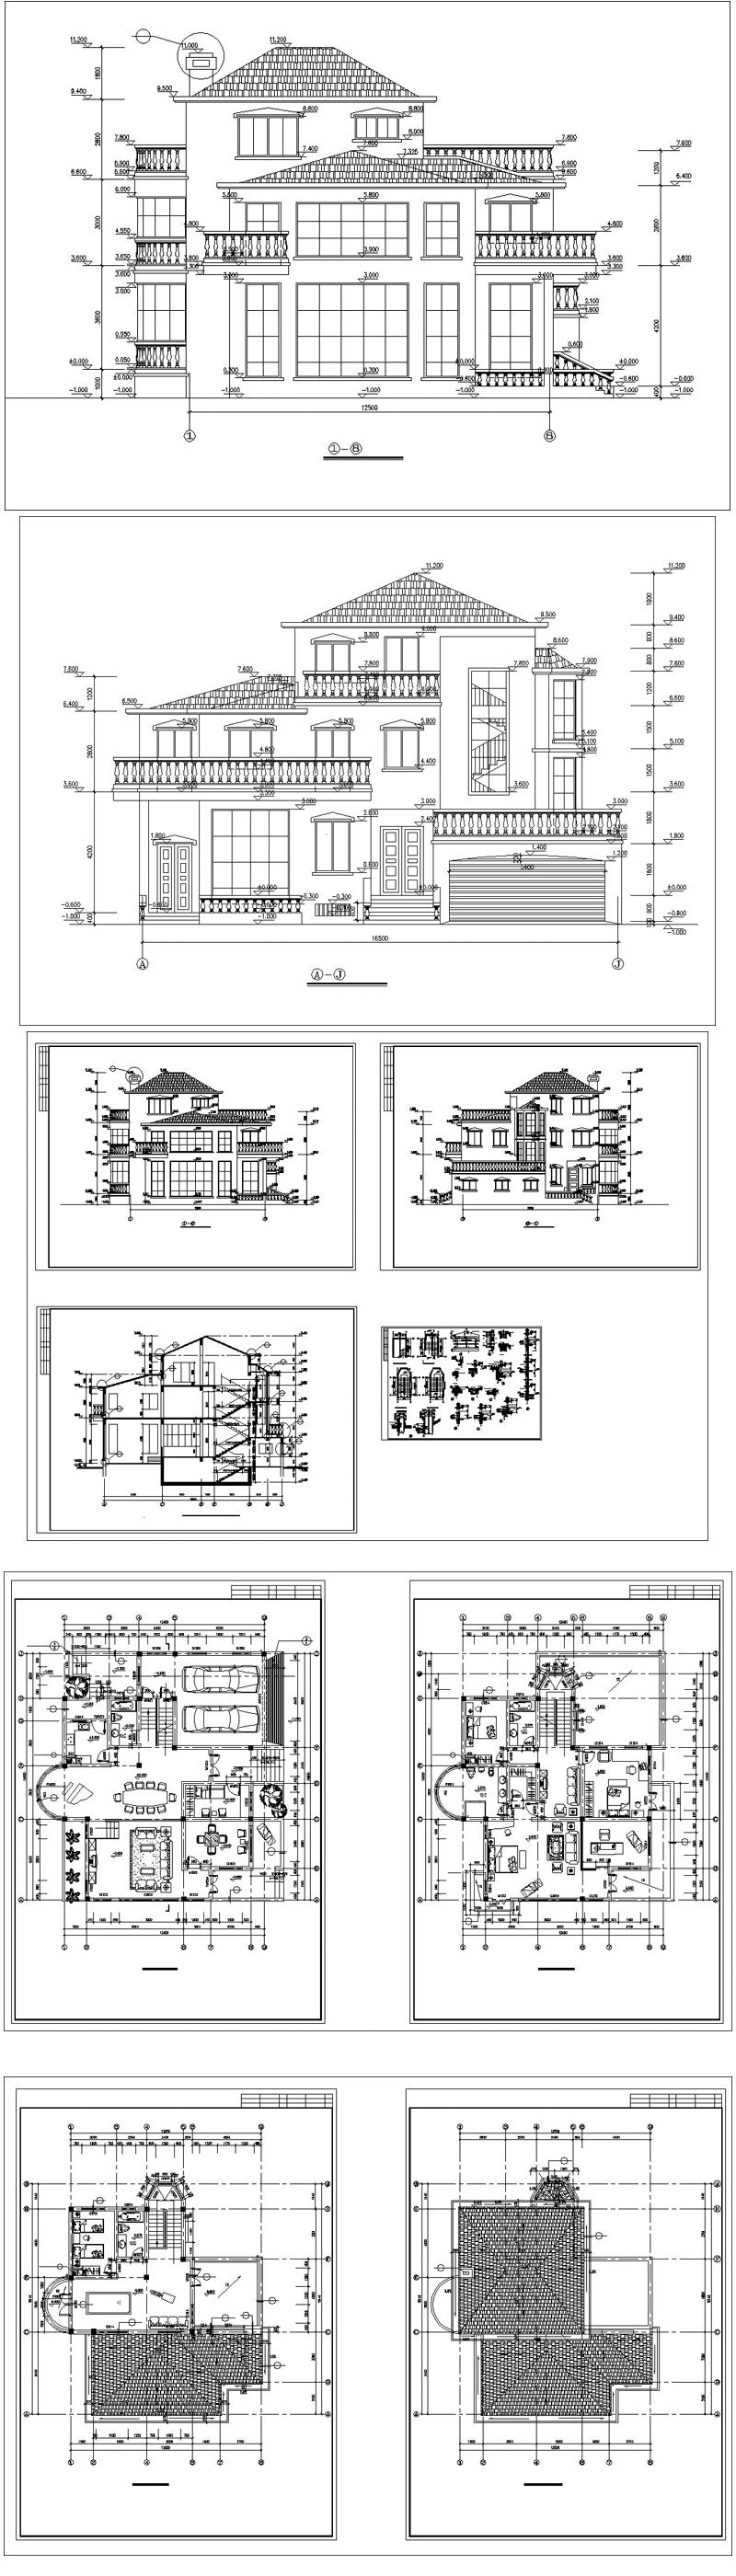 ★【Villa CAD Design,Details Project V.12】Chateau,Manor,Mansion,Villa@Autocad Blocks,Drawings,CAD Details,Elevation